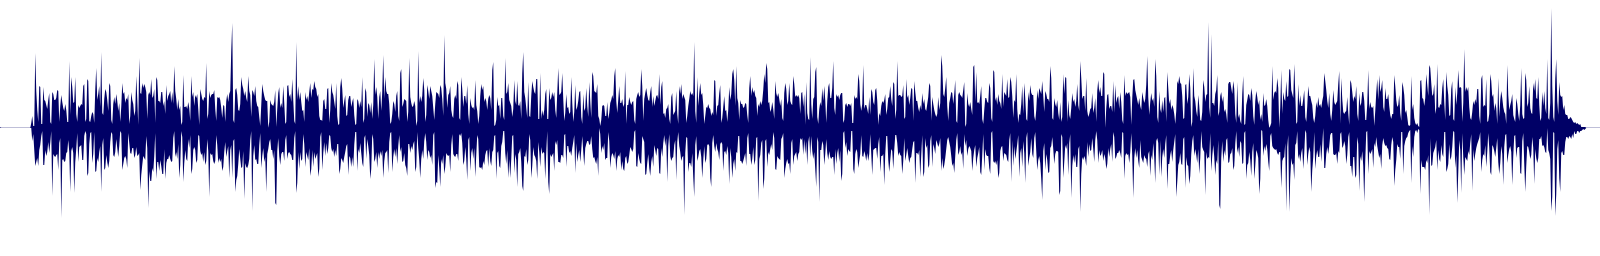 waveform of track #152498